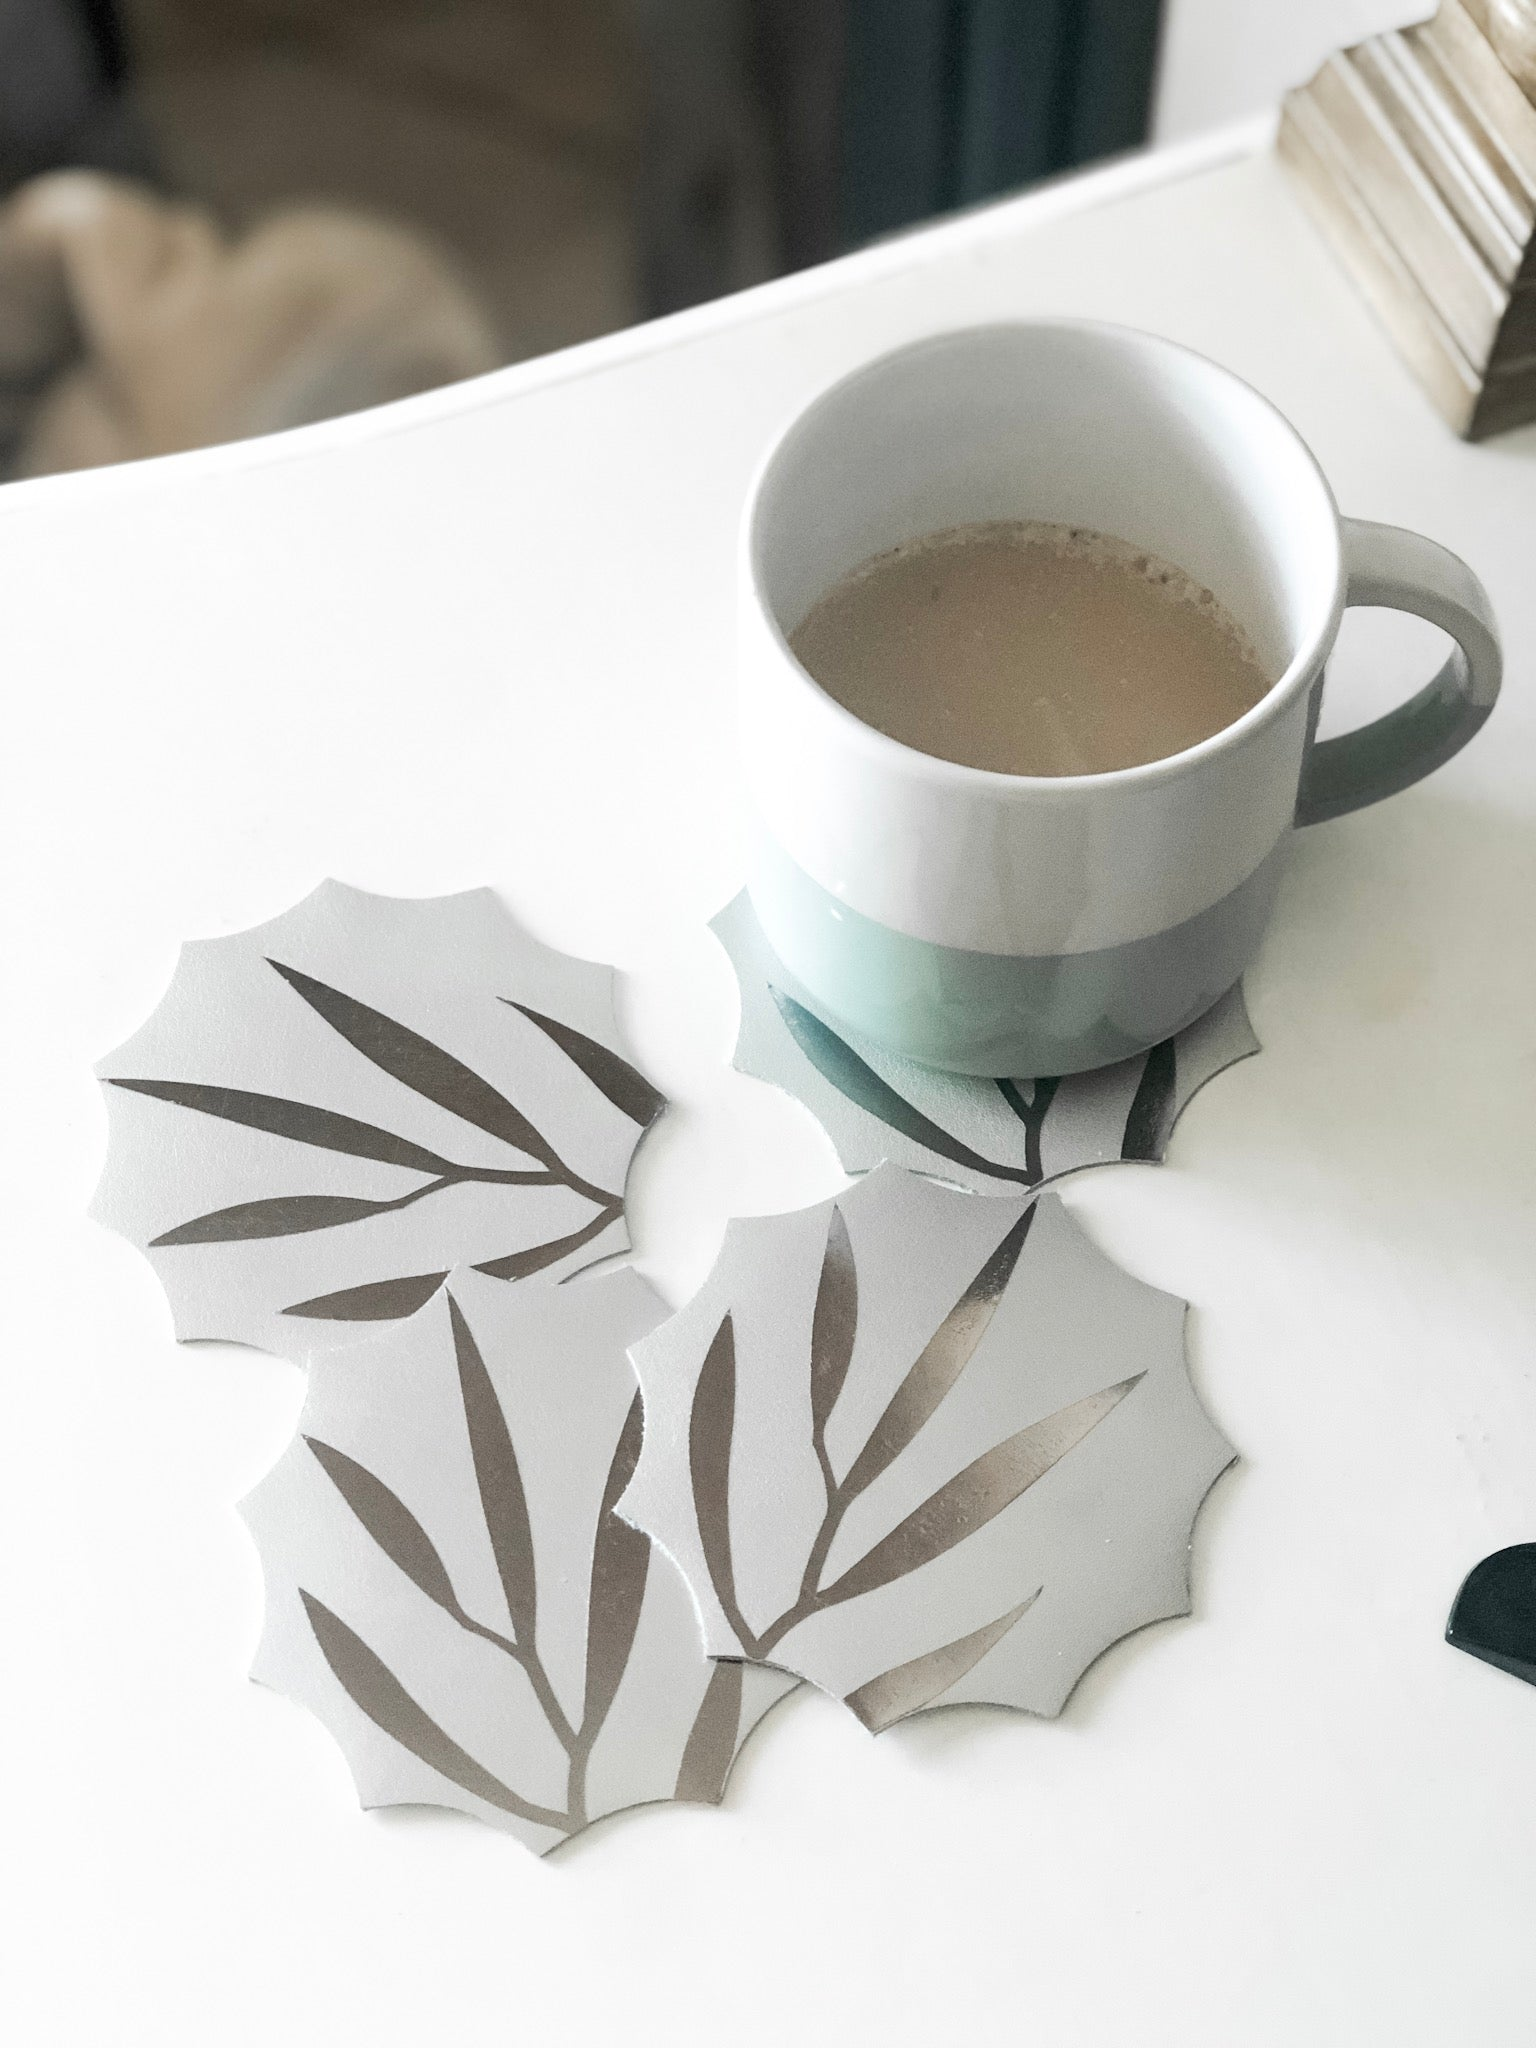 DIY Leather Coasters with a Cricut